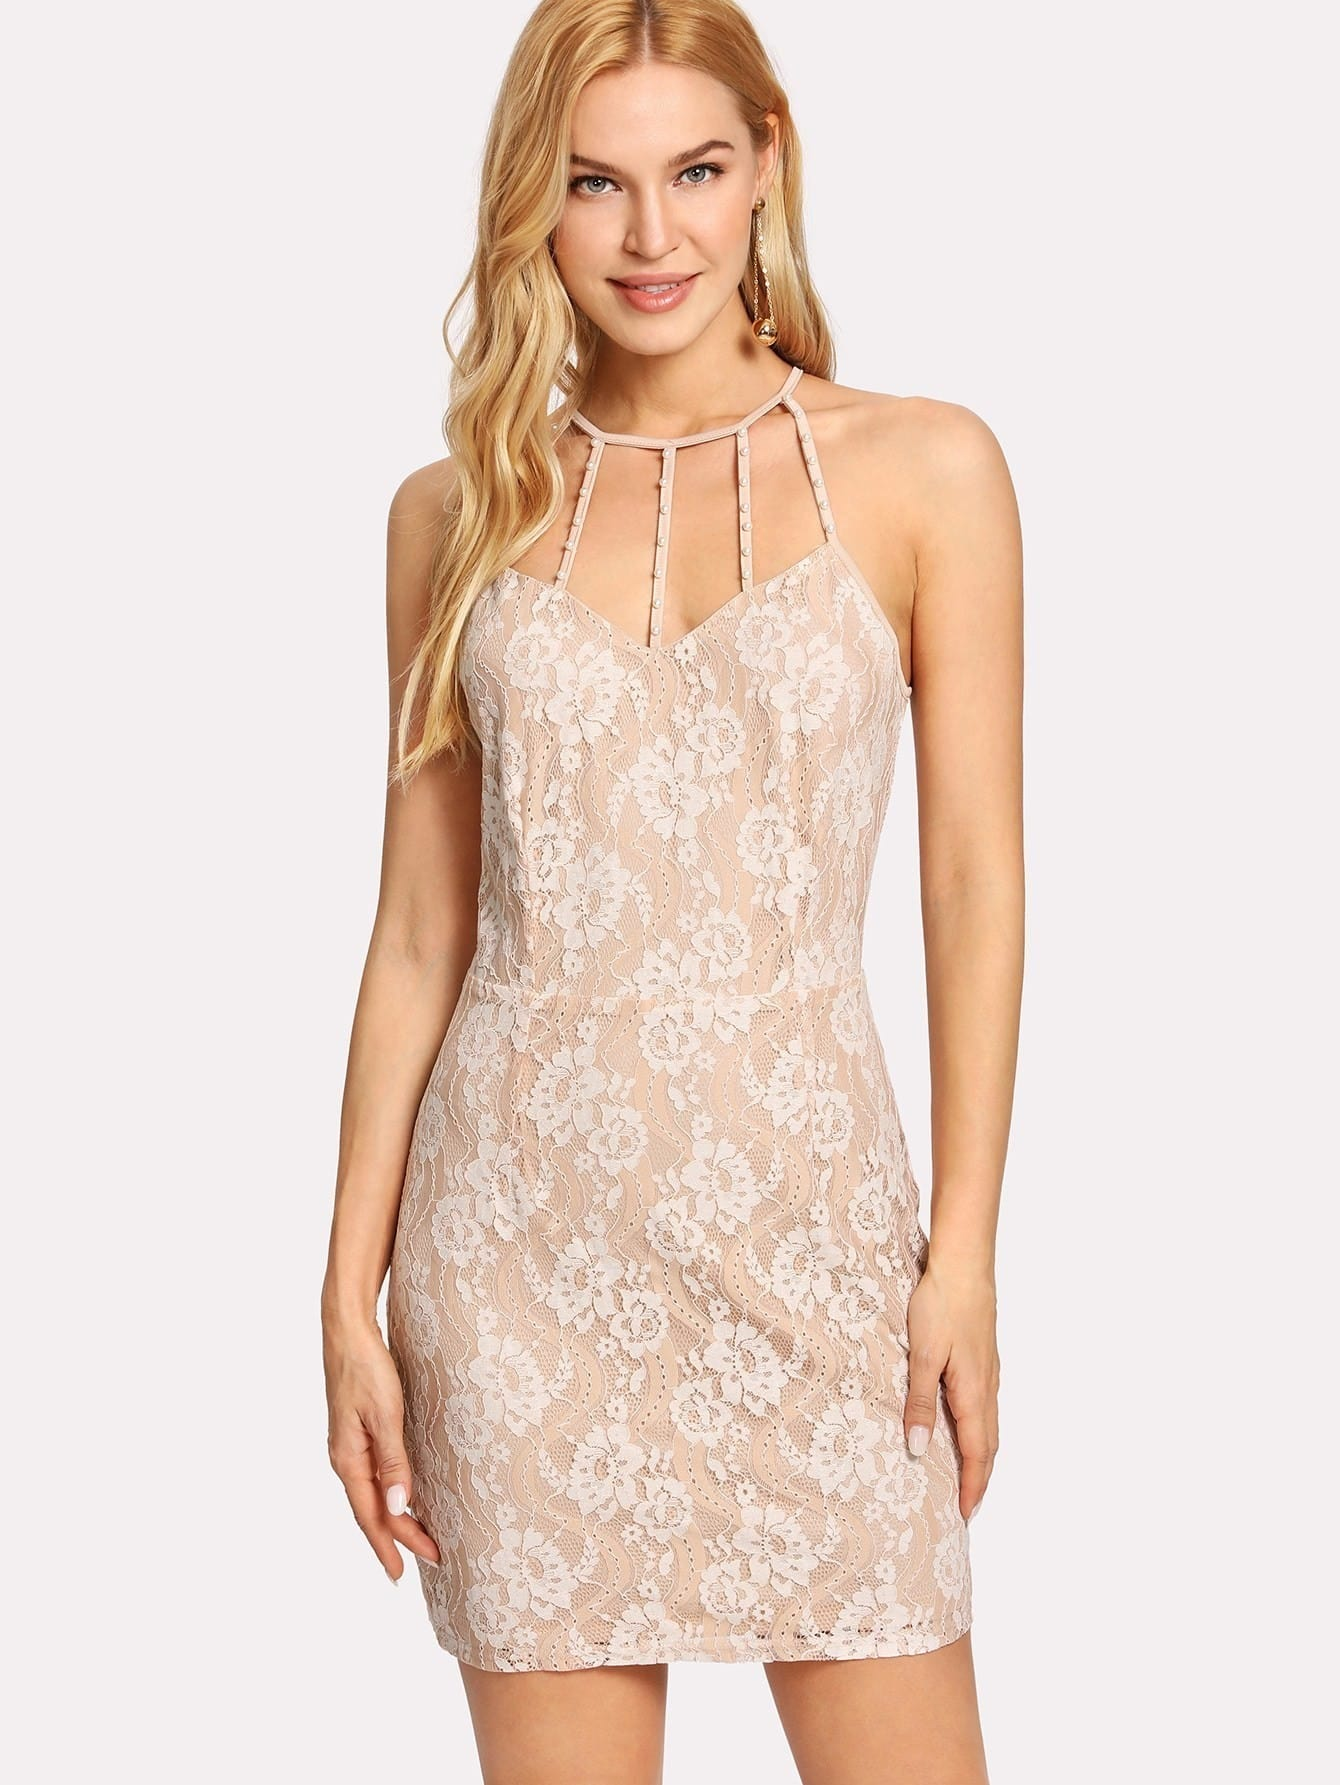 Caged Neck Lace Dress caged neck solid dress